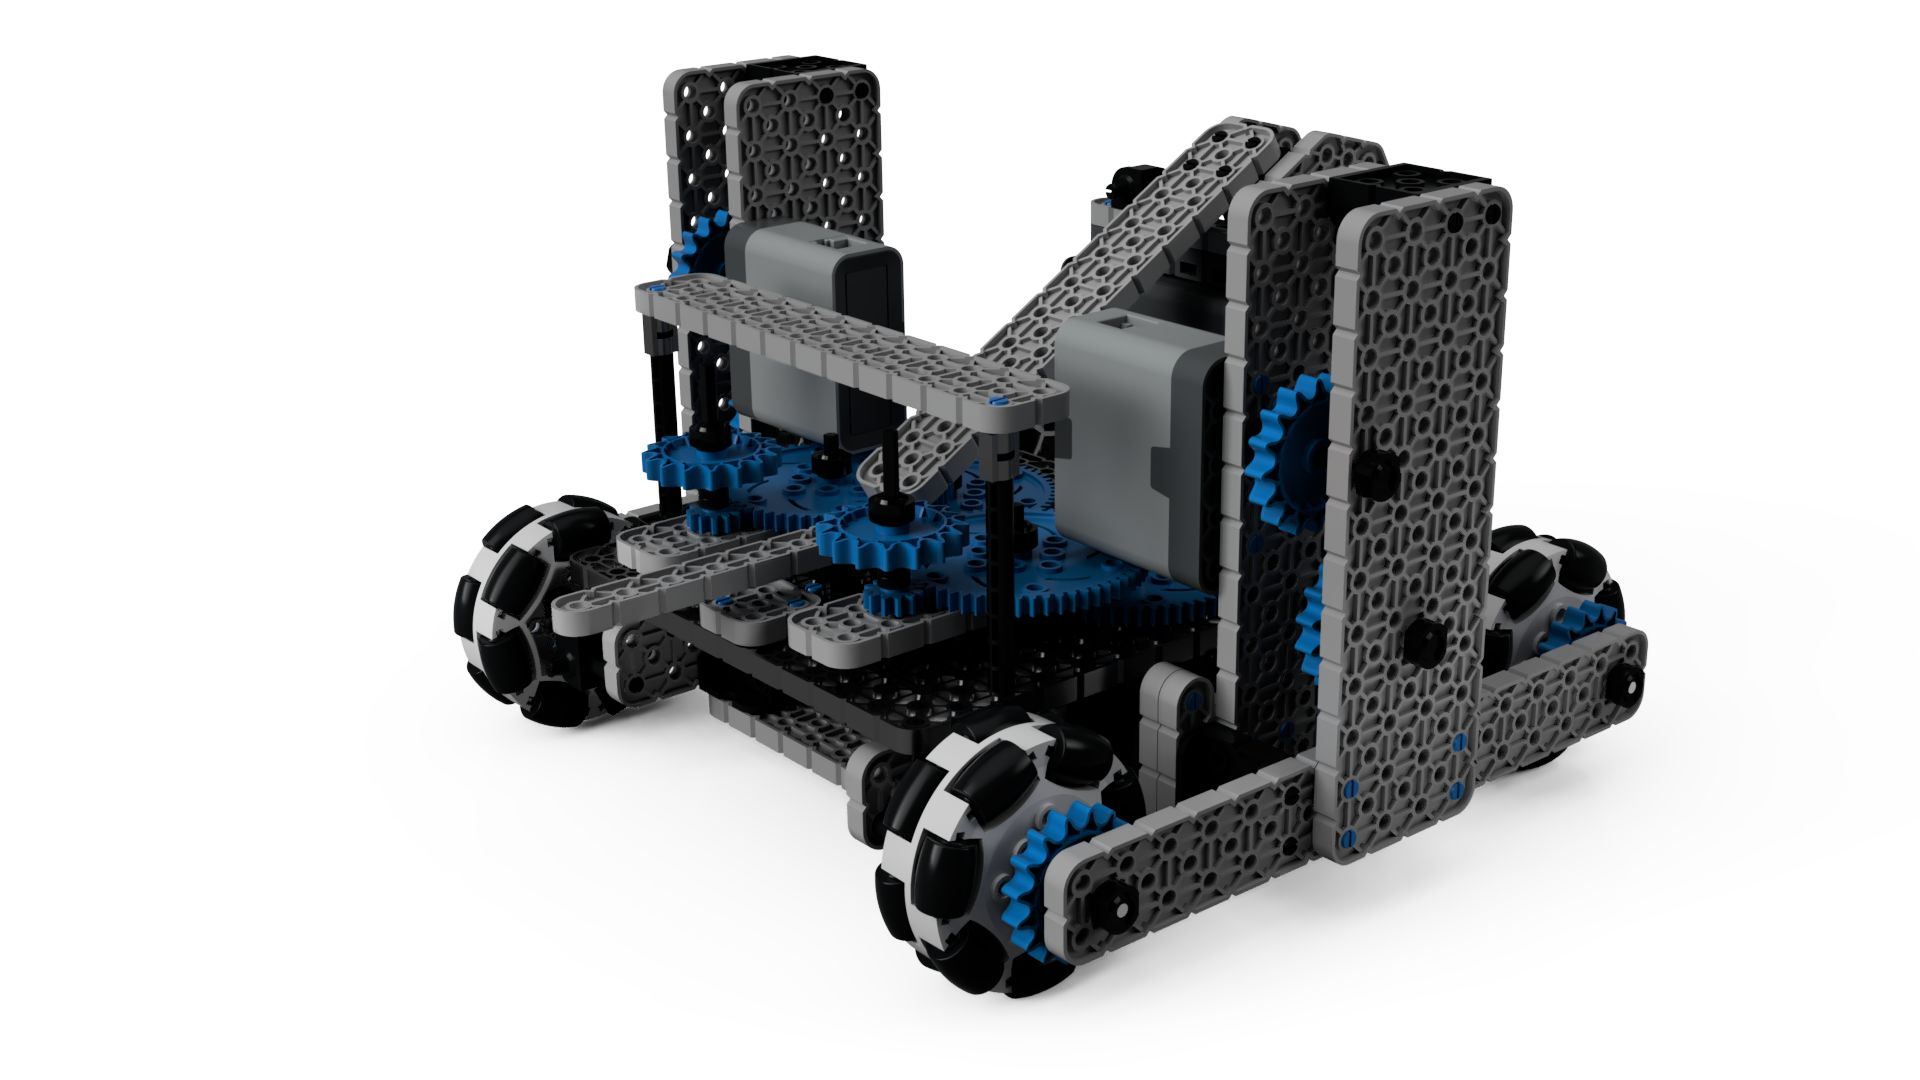 Vex-iq---ball-trigger-robot-2019-jun-05-08-52-45pm-000-customizedview21748334690-png-3500-3500